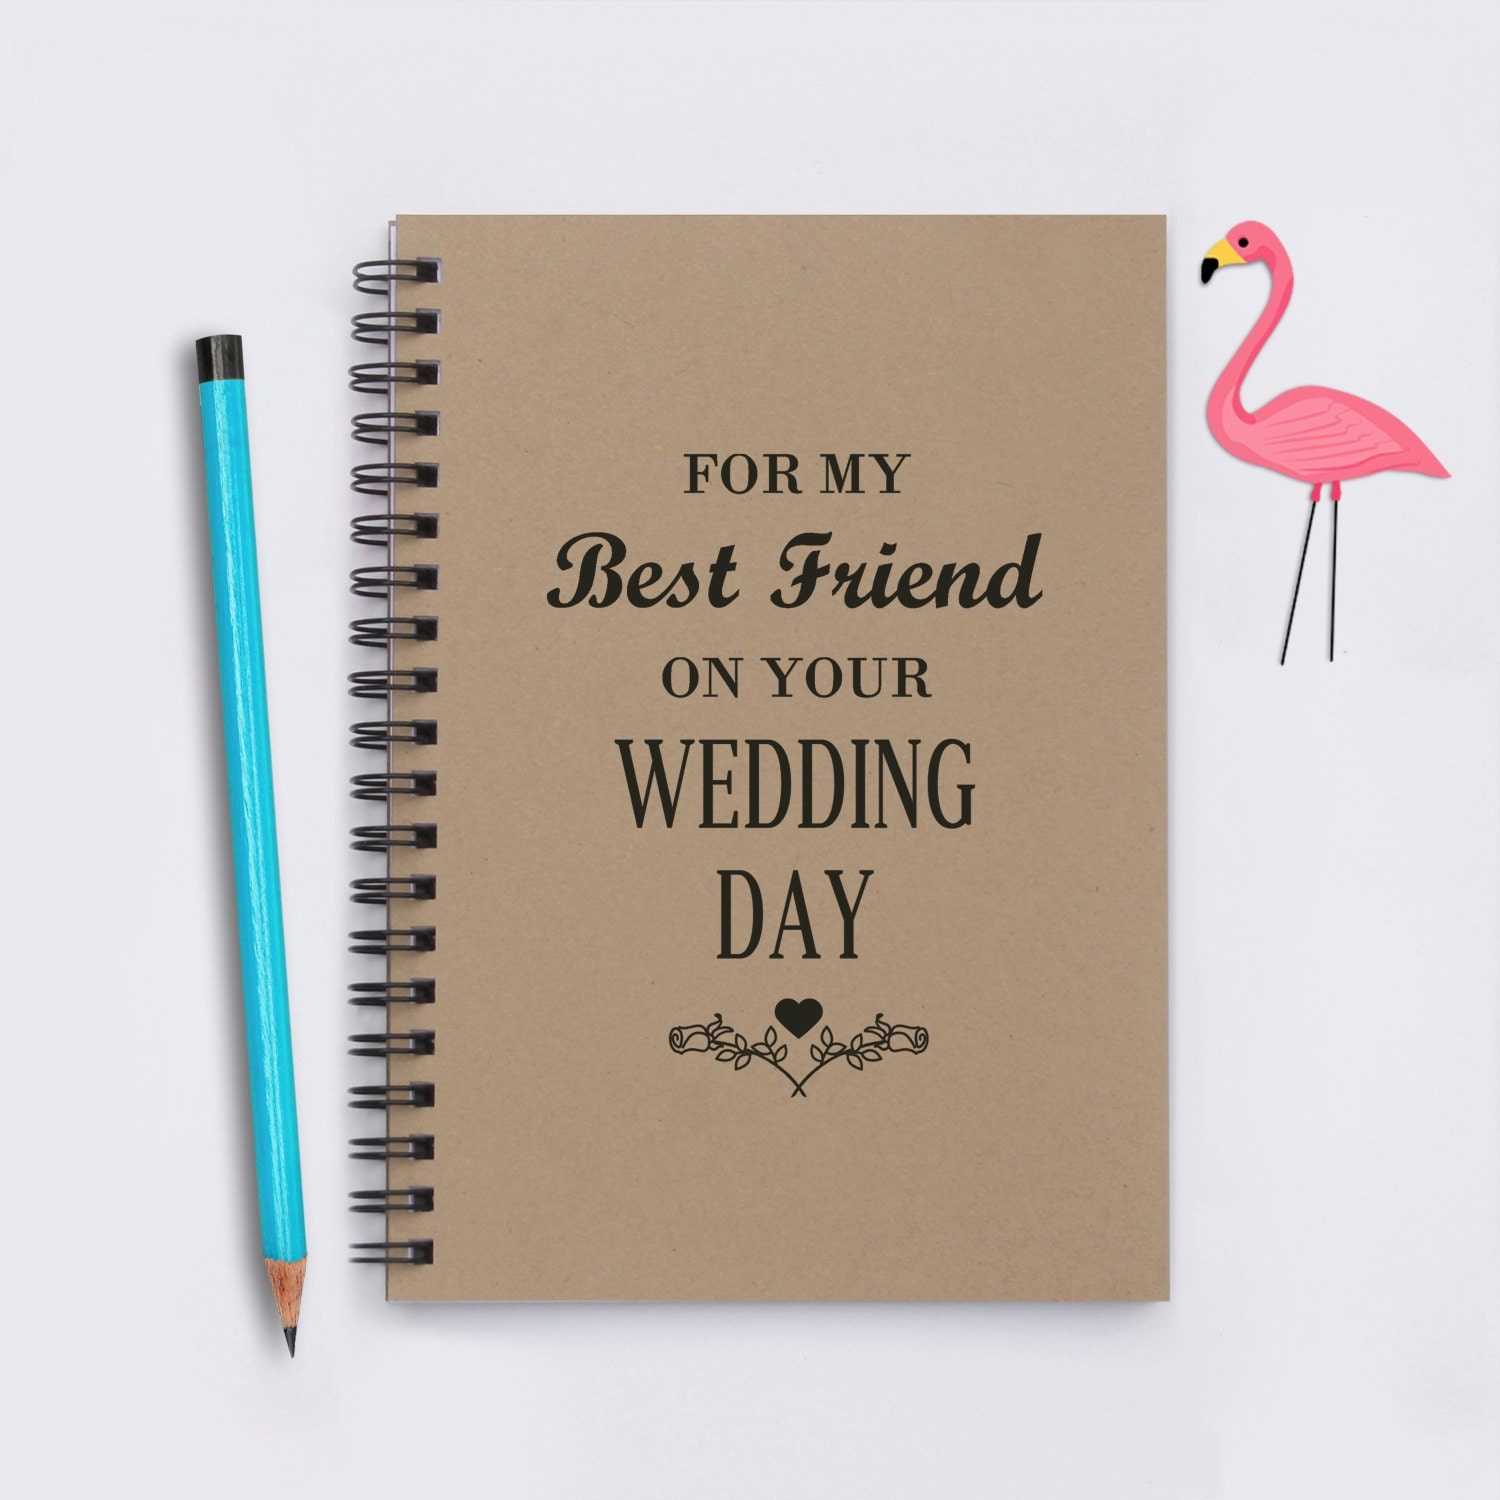 Wedding Gift Ideas For Distant Friends : Best friend wedding gift For My Best Friend On Your Wedding